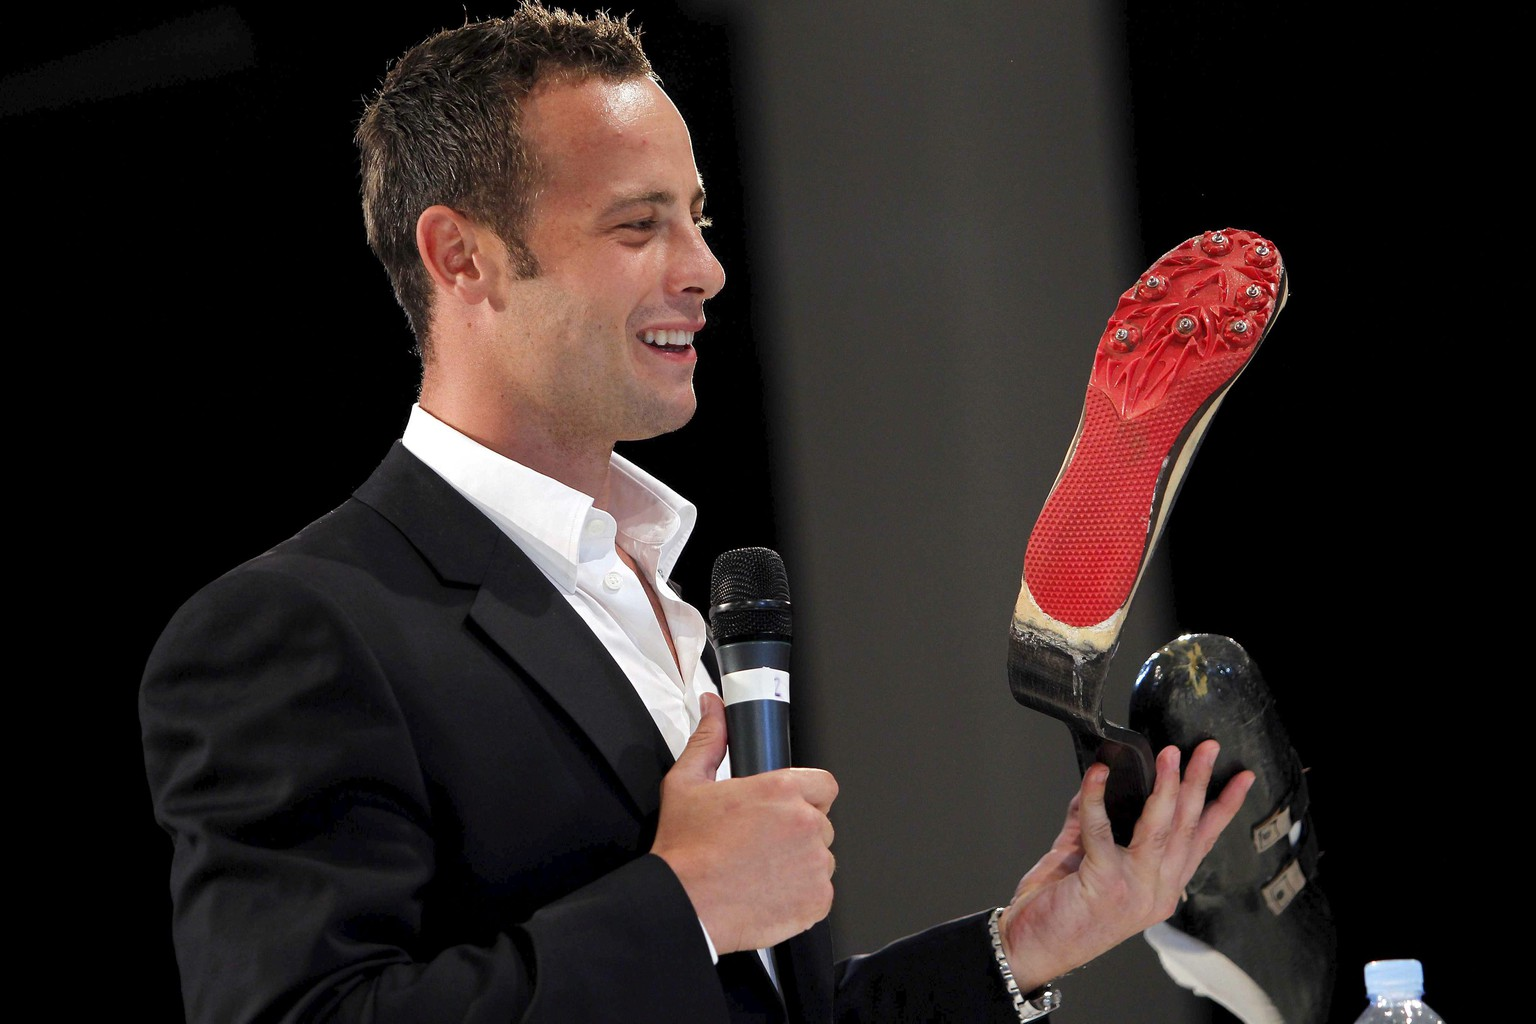 epa04088060 (FILE) A file picture dated 10 March 2011 shows South African Paralympic runner Oscar Pistorius showing one of his artificial lower limbs as he takes part in a round table session during the 3rd Global Sports Forum in Barcelona, Spain. Pistorius is due to stand trial from 03 March for the premeditated murder of his model girlfriend Reeva Steenkamp in February 2013.  EPA/MARTA PEREZ *** Local Caption *** 02625453